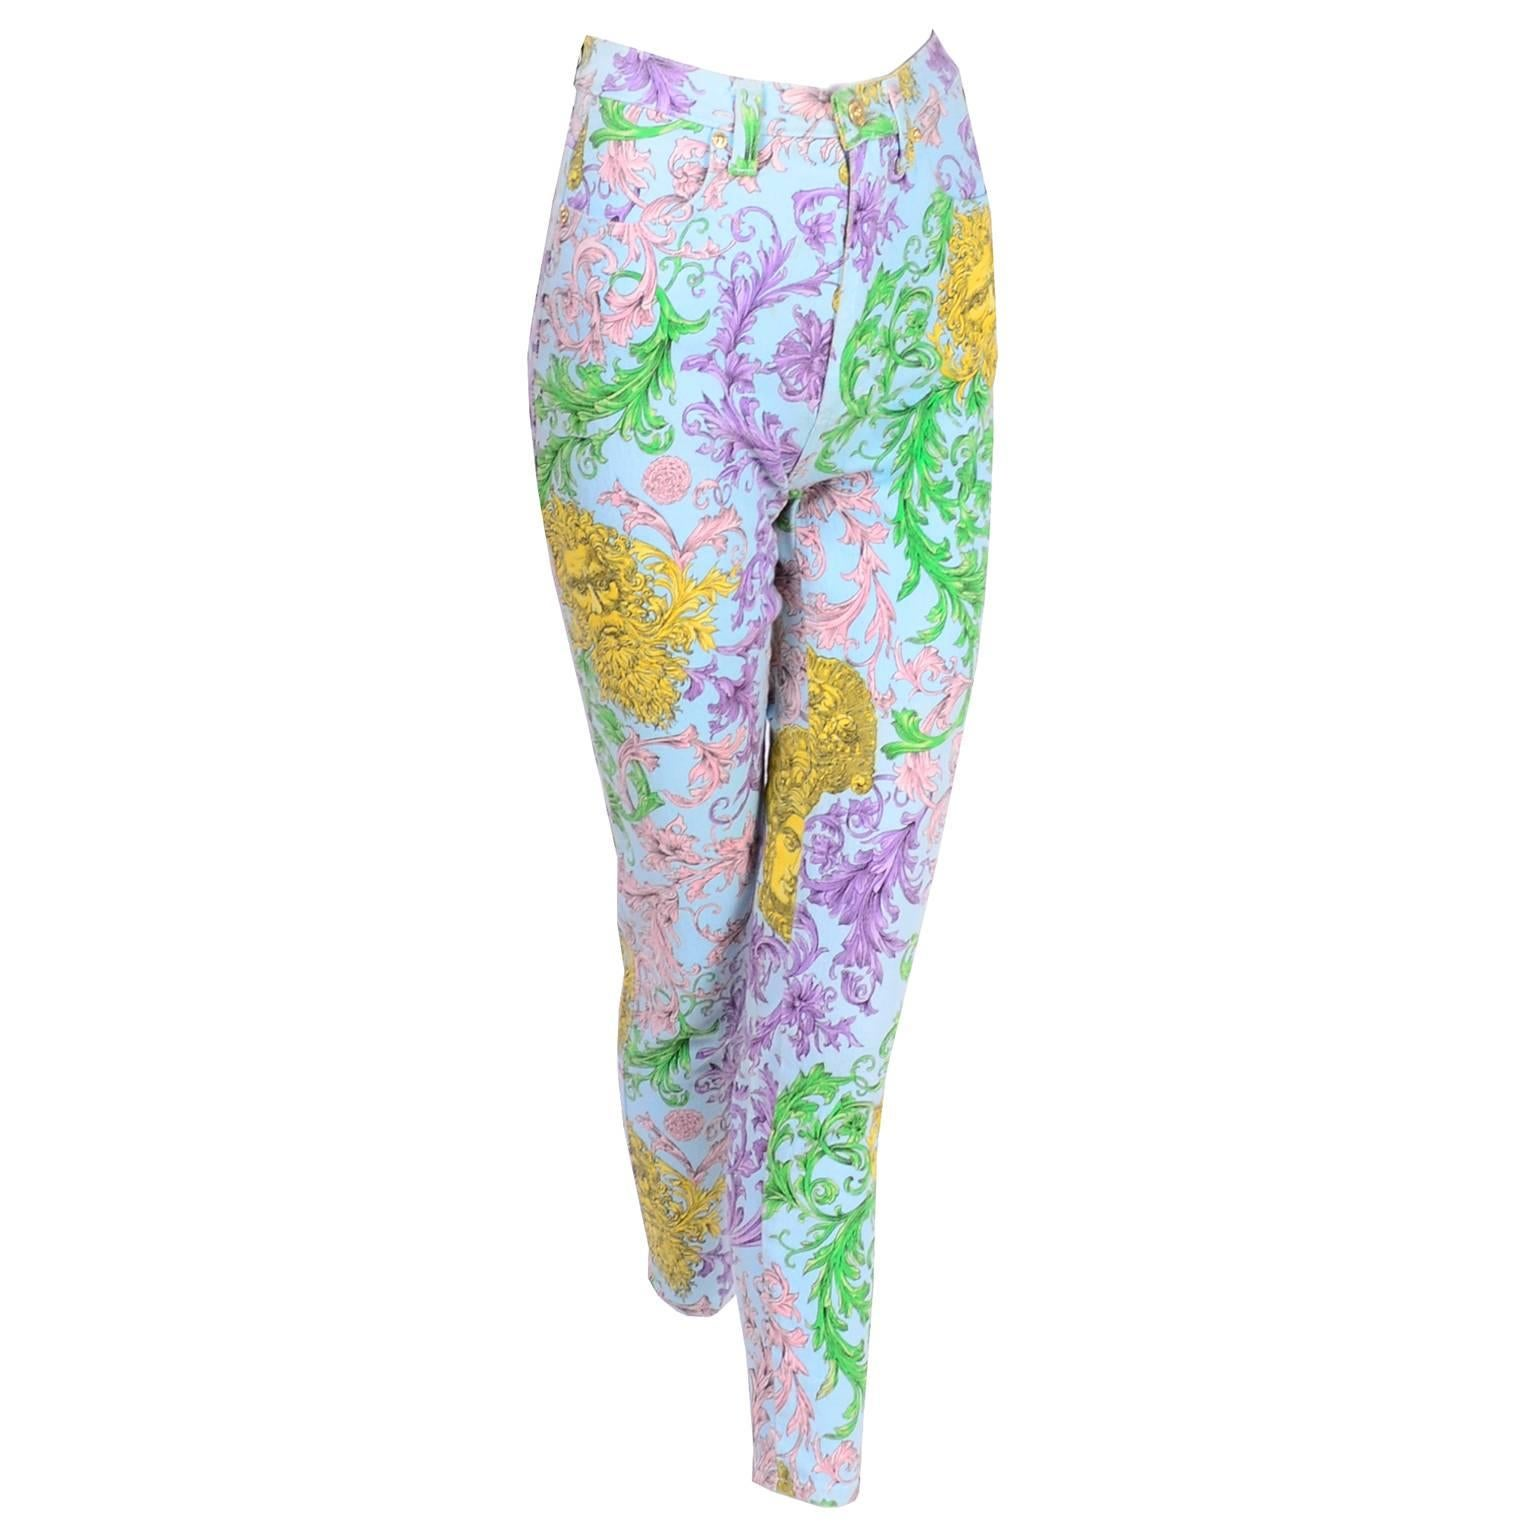 726051335a9f Gianni Versace Jeans Couture Acanthus Pattern Medusa Head Vintage Pants  Size 2 at 1stdibs